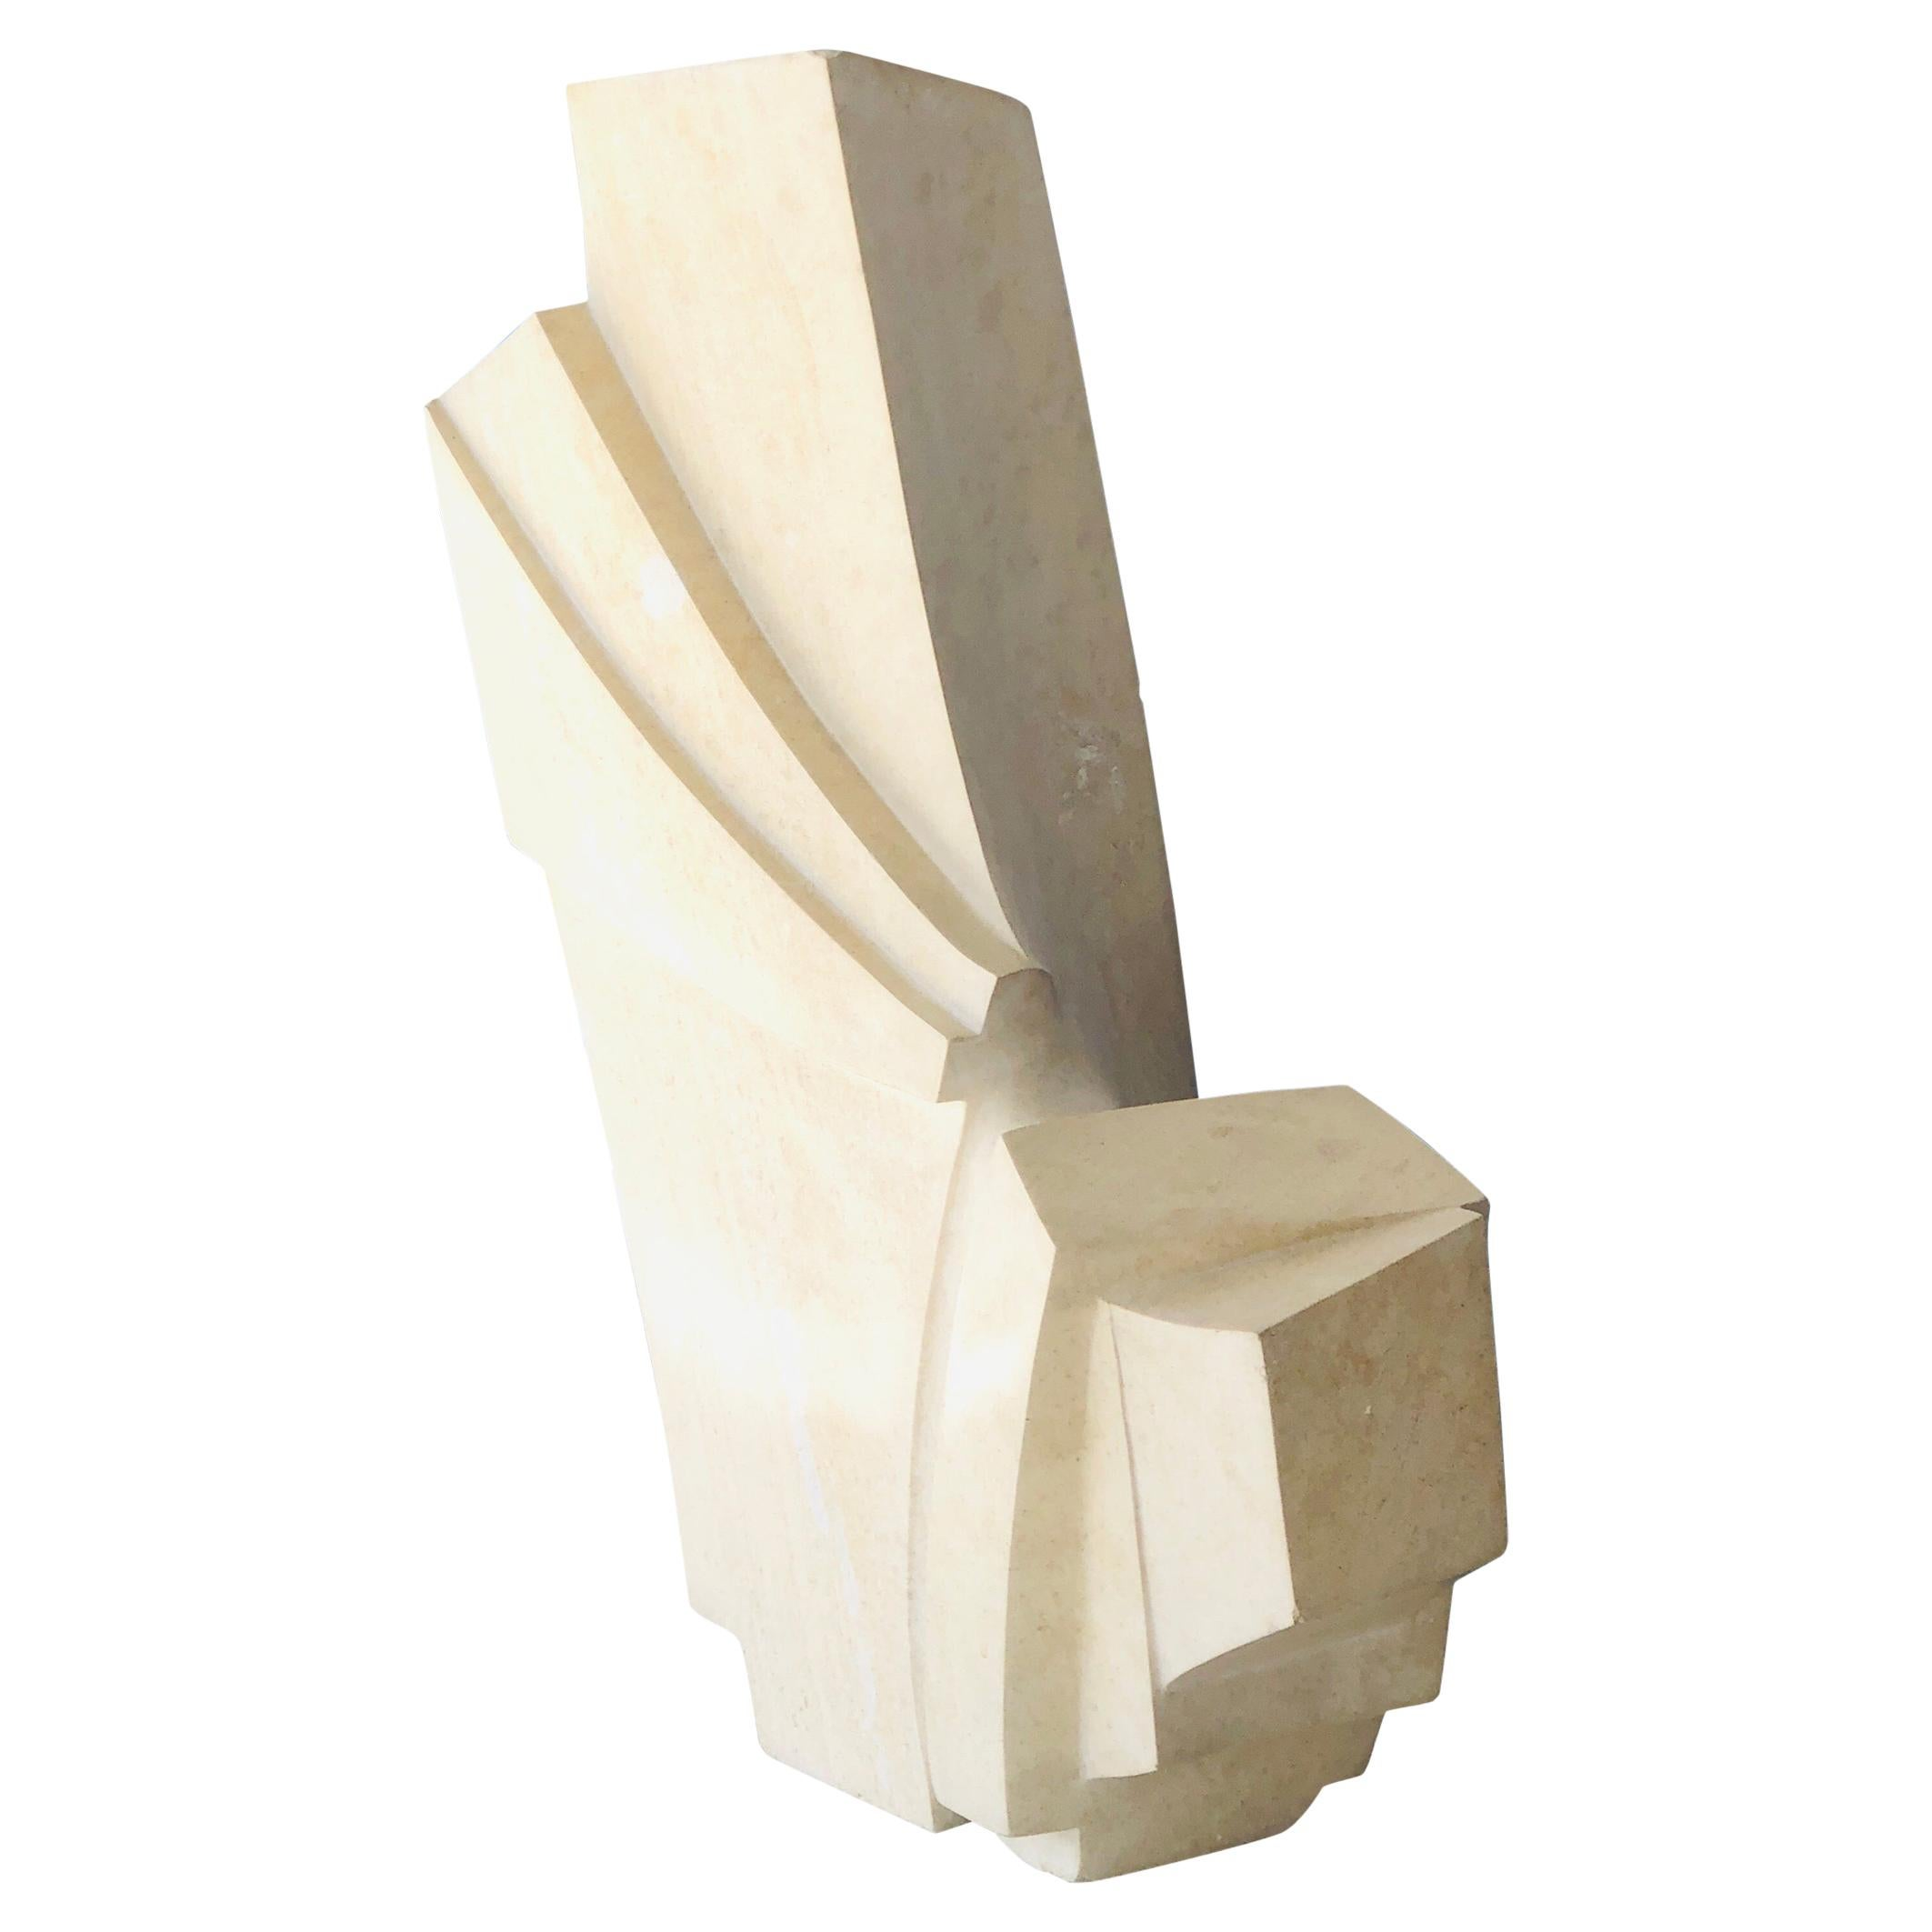 Abstract Modern Marble Sculpture, 1970s